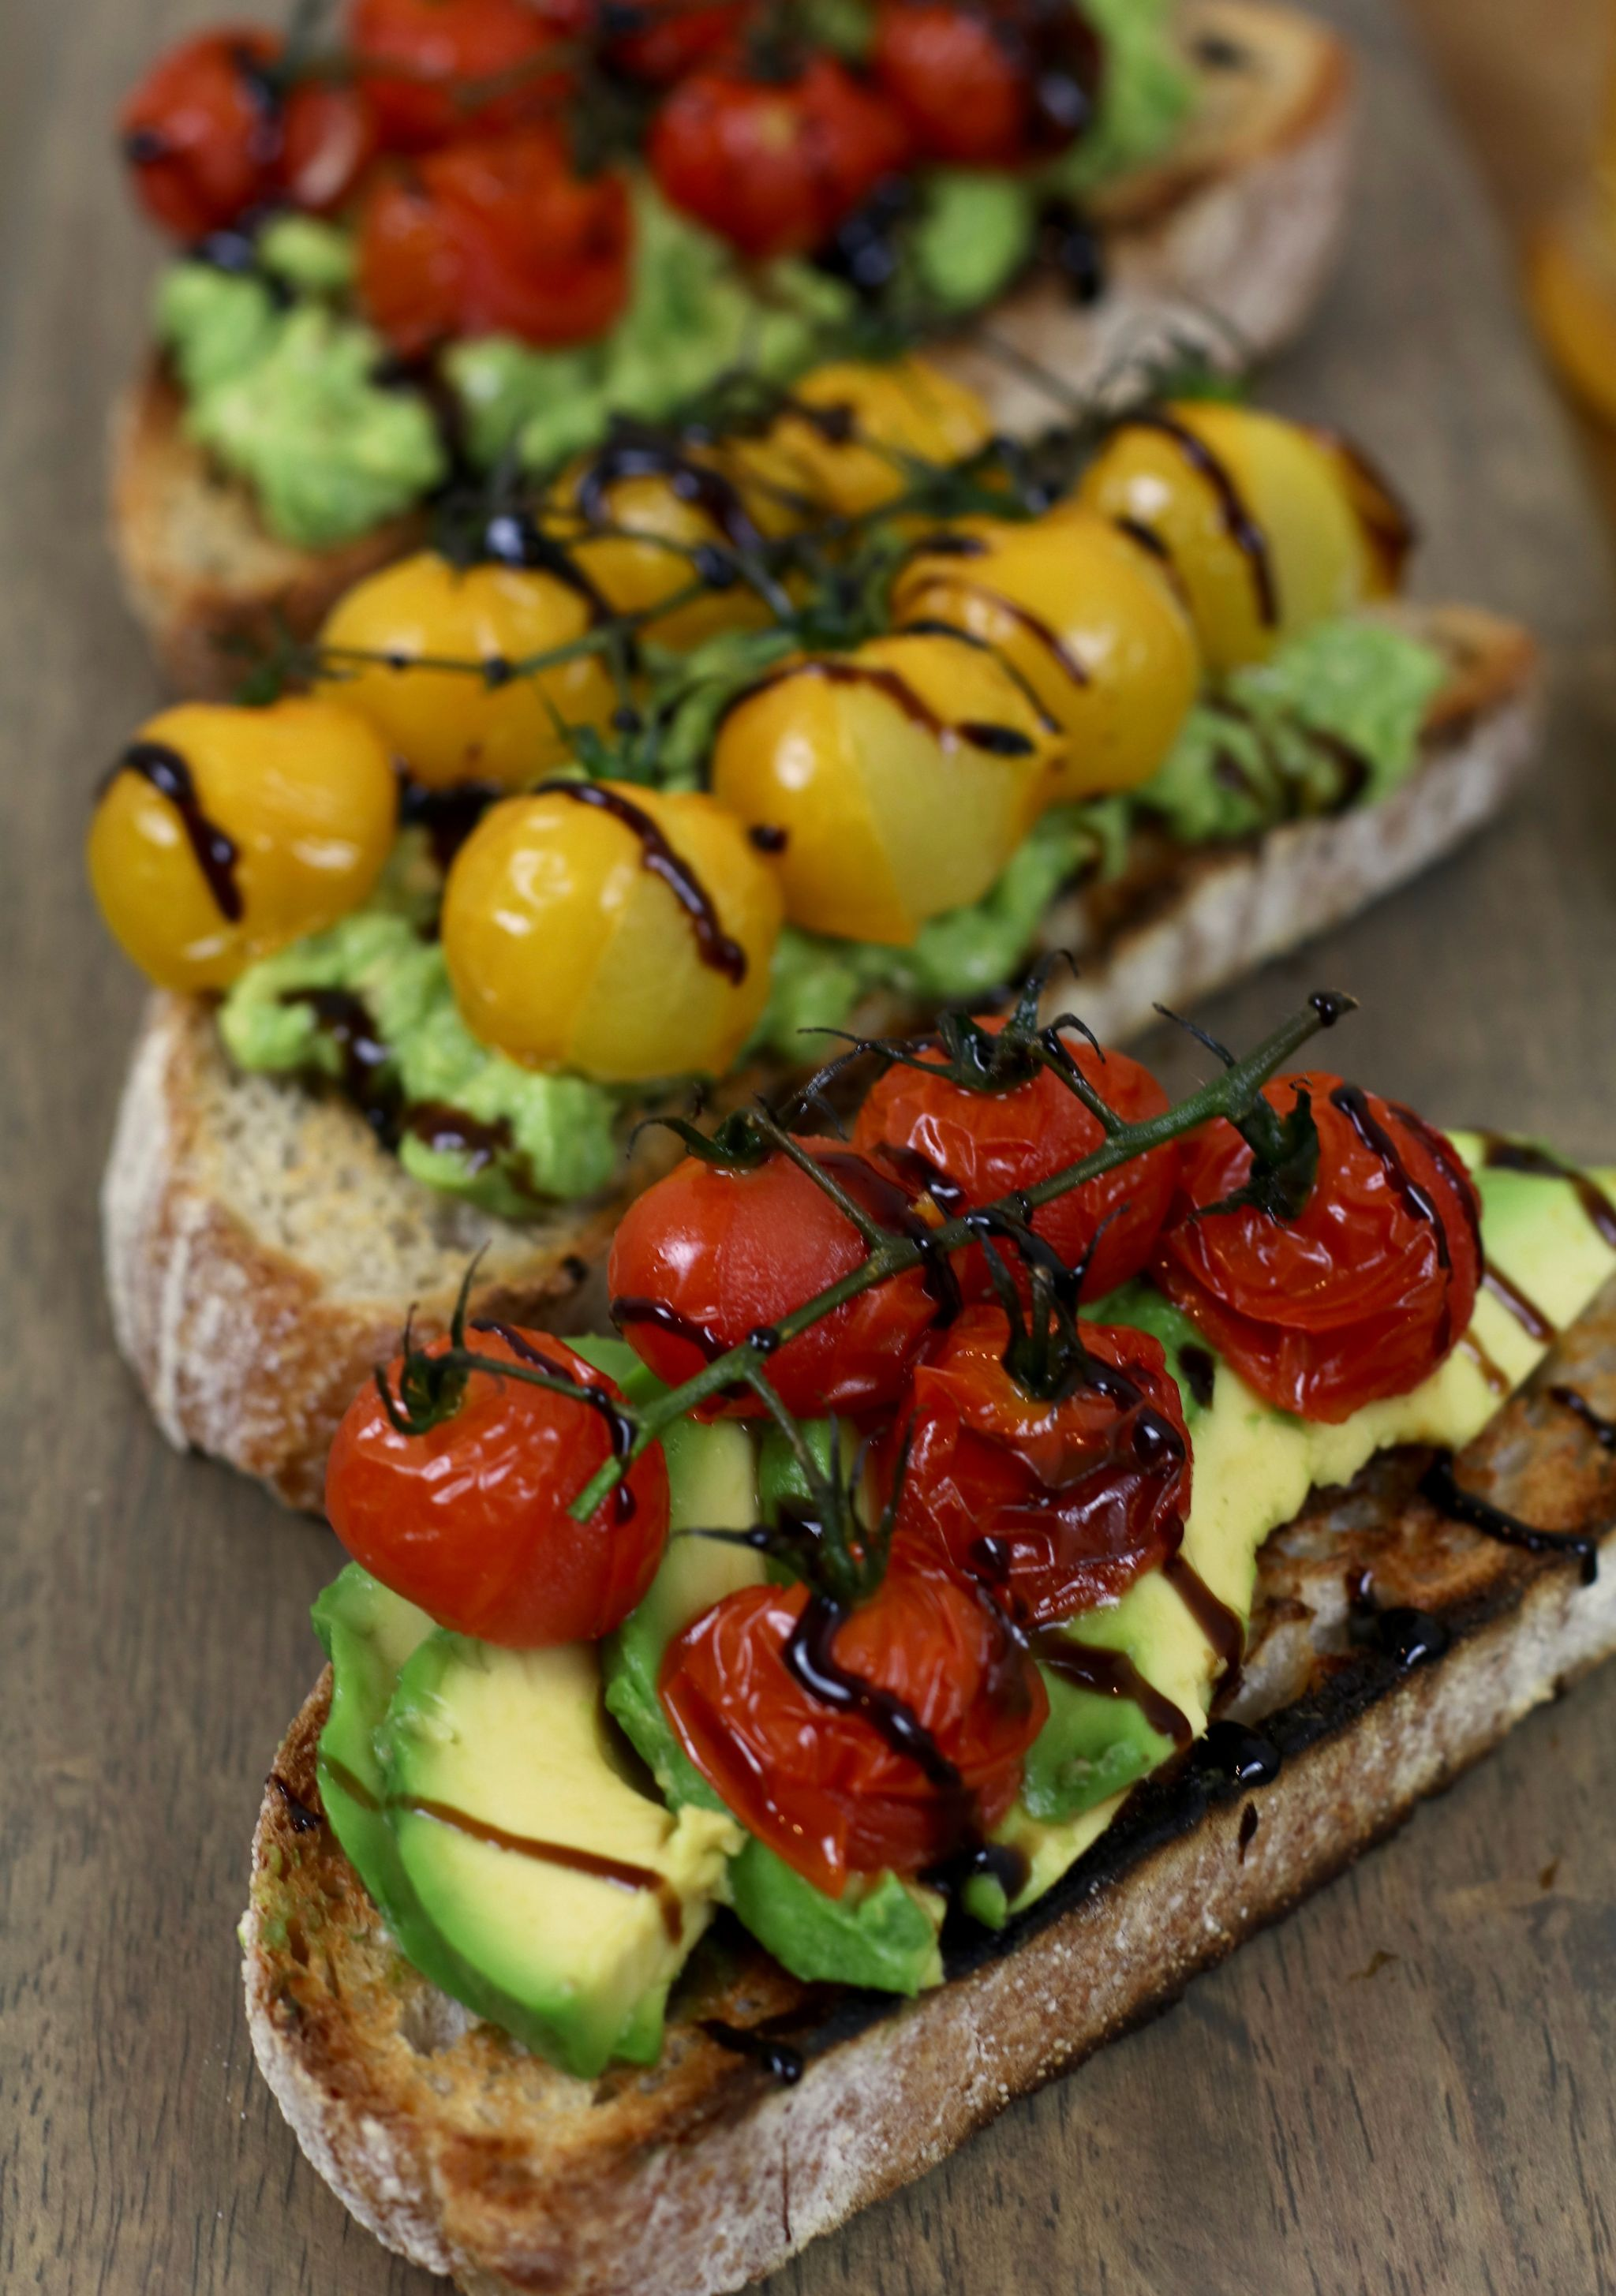 Brunch at home - avocado toast